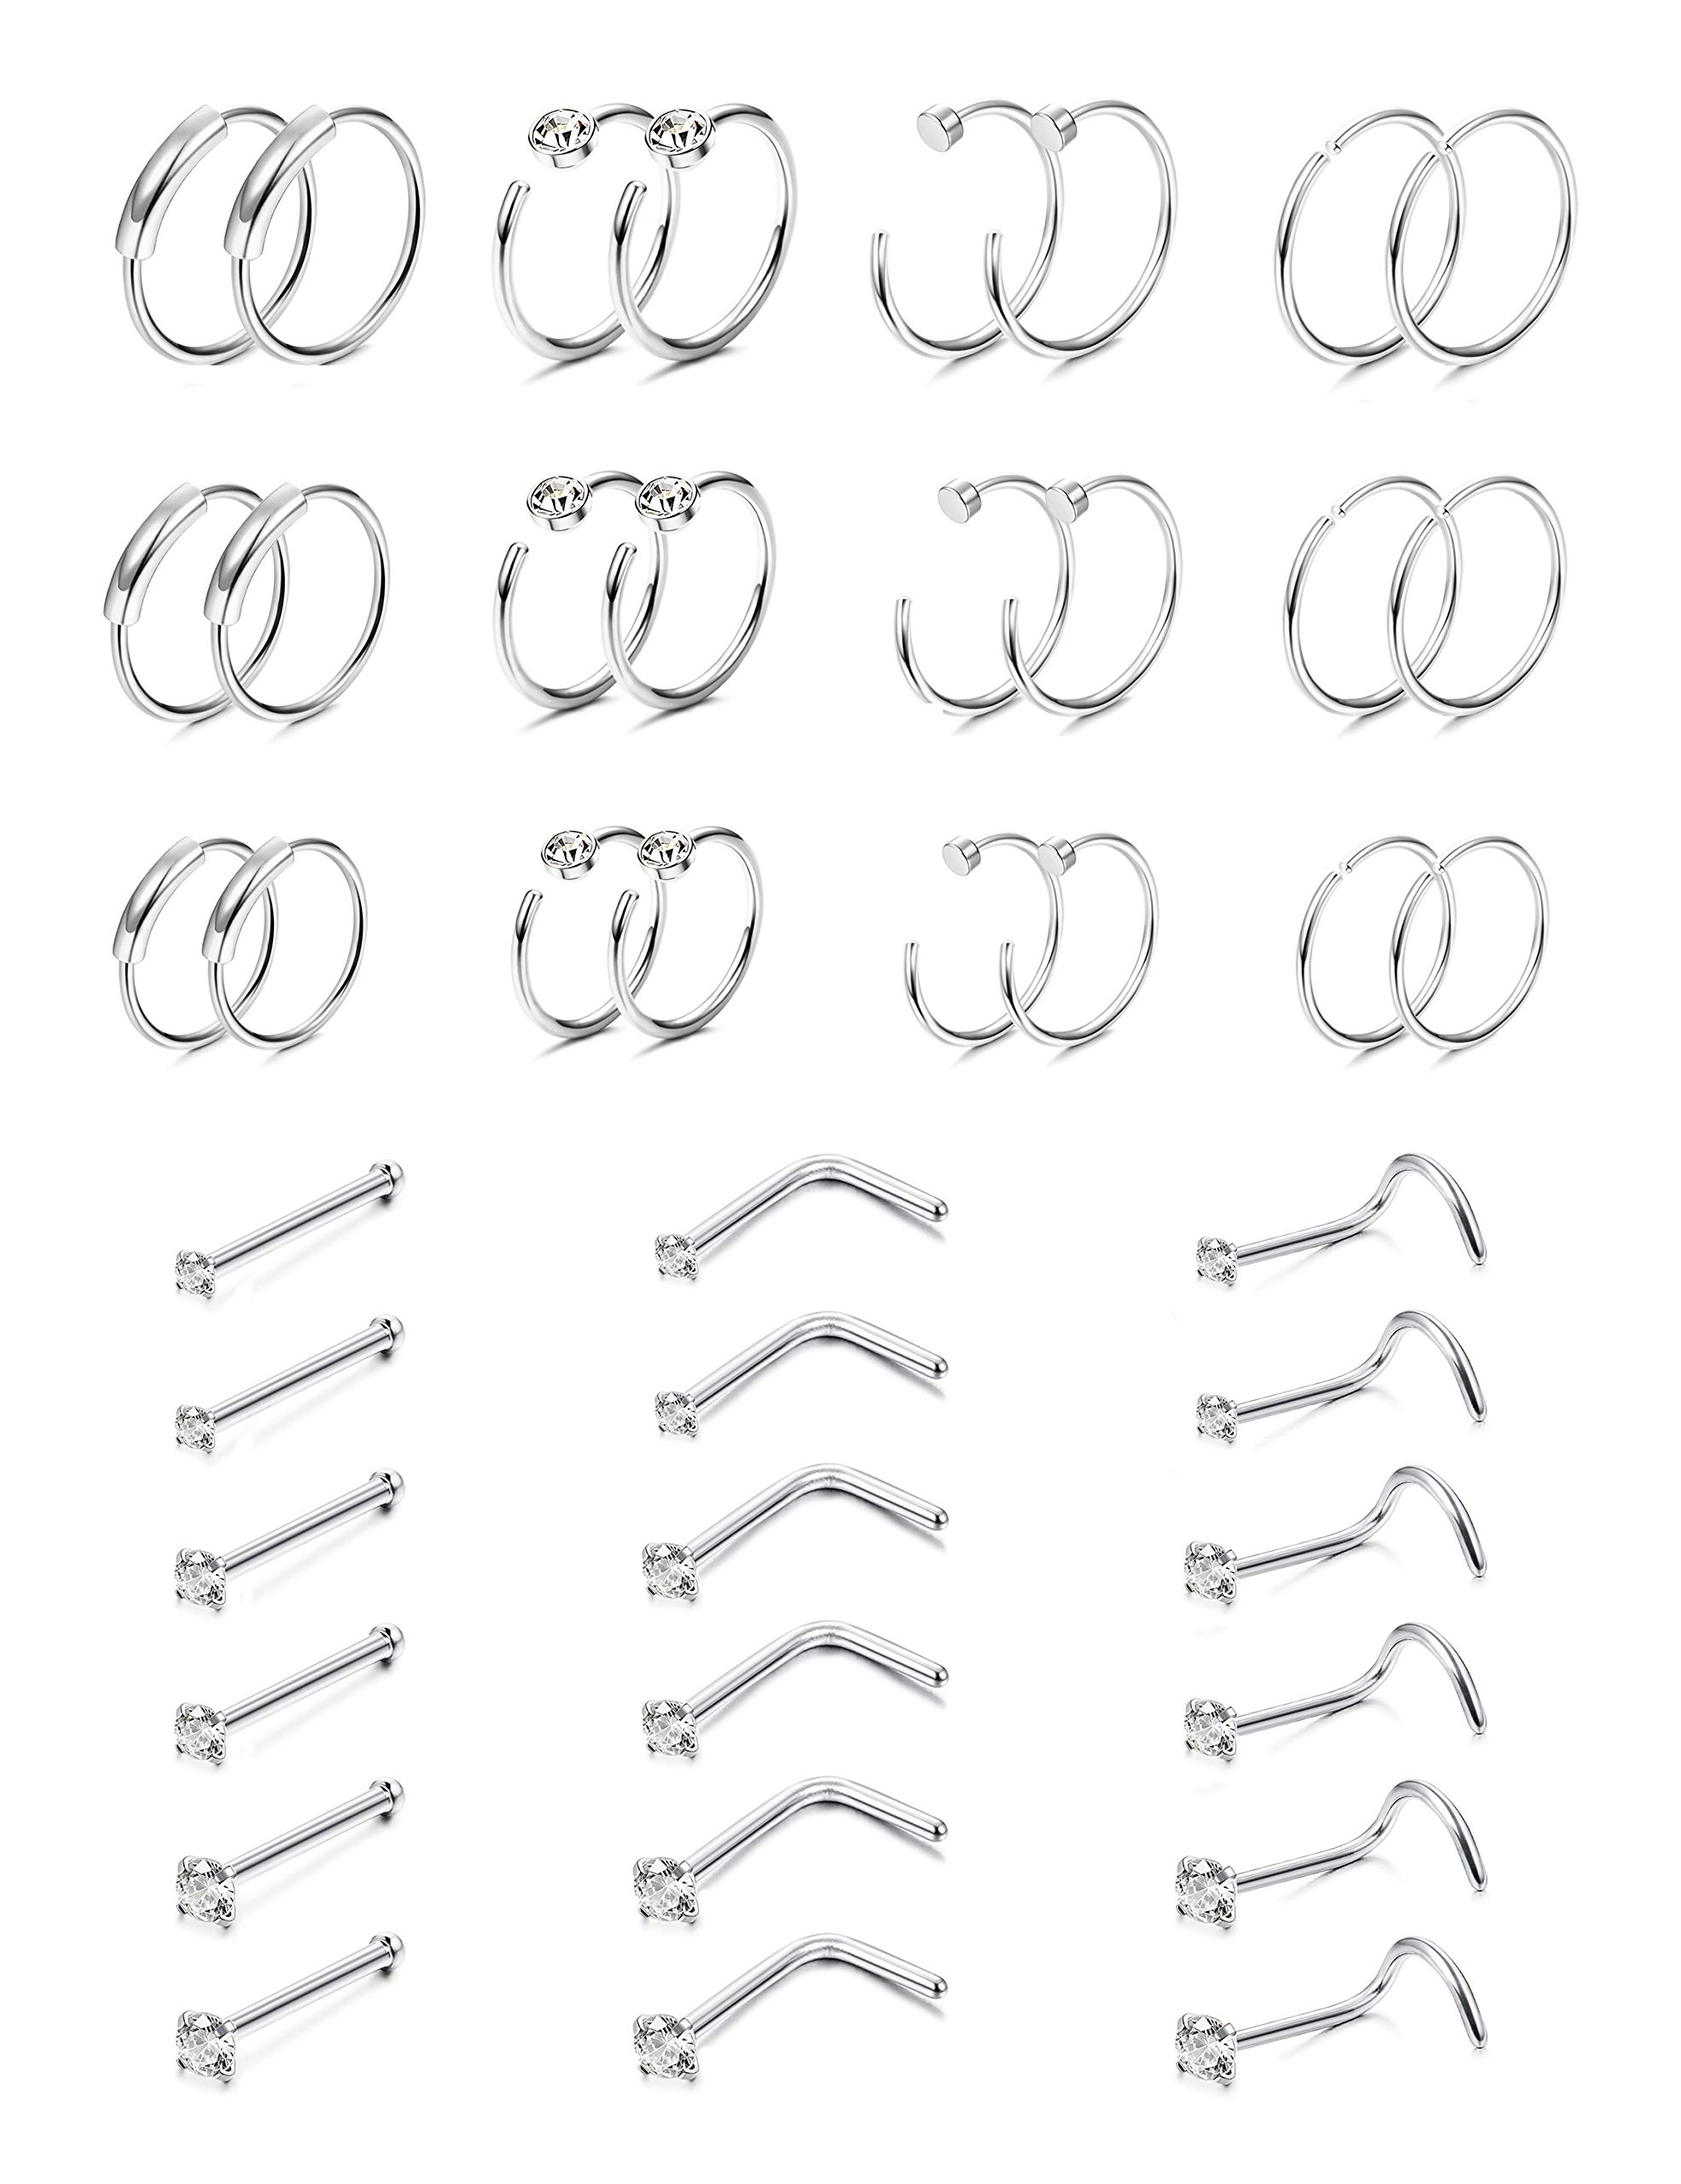 FUNRUN JEWELRY 42PCS 22G Stainless Steel Nose Ring Hoop CZ Nose Stud Piercing L Screw Bone Shaped by FUNRUN JEWELRY